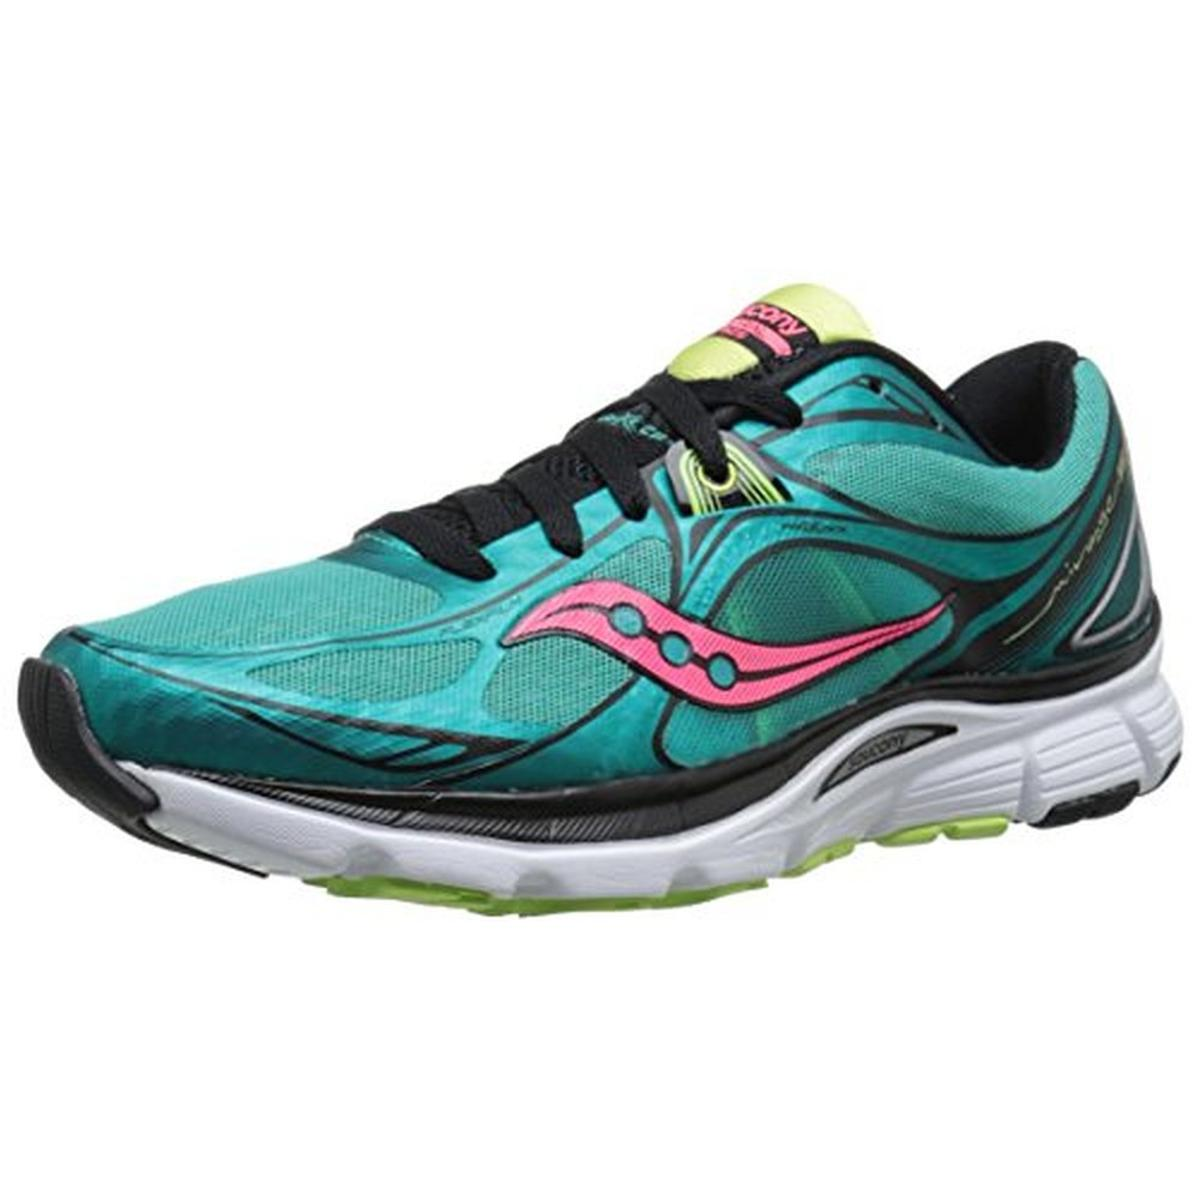 Saucony Womens Mirage 5 Mesh Metallic Running Shoes by Saucony